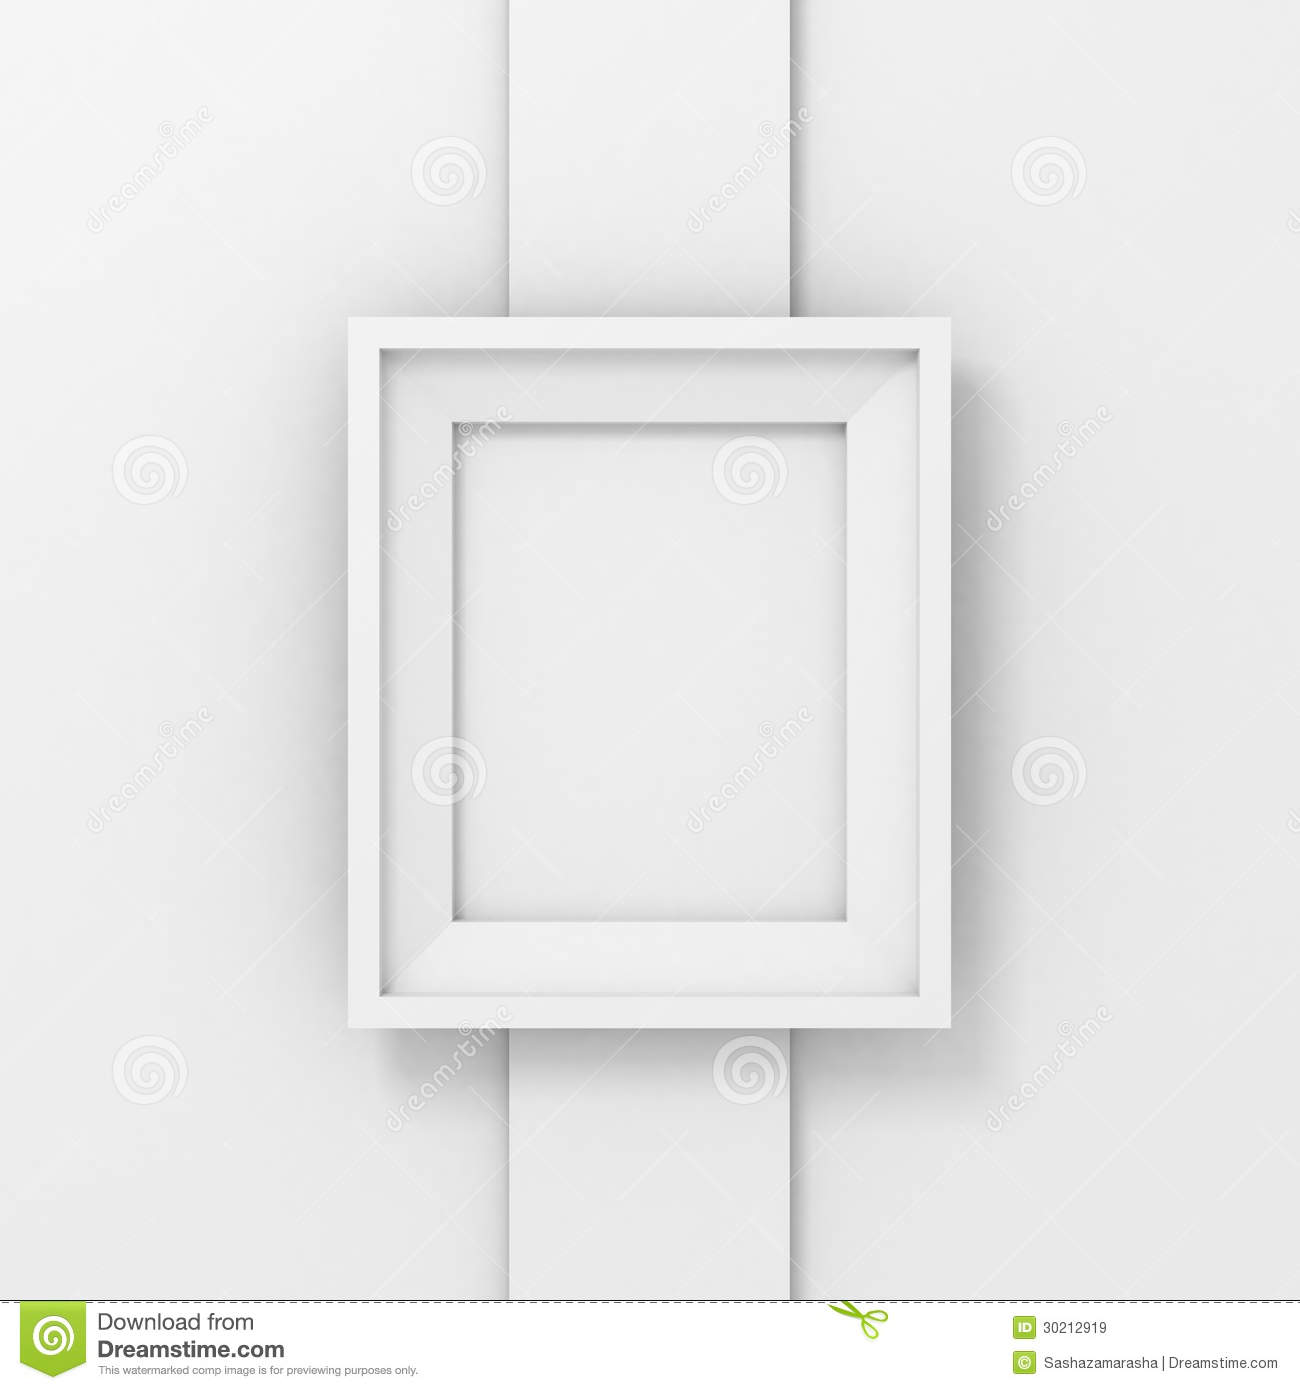 Blank picture or photo frame on a white wall column - White wall picture frames ...